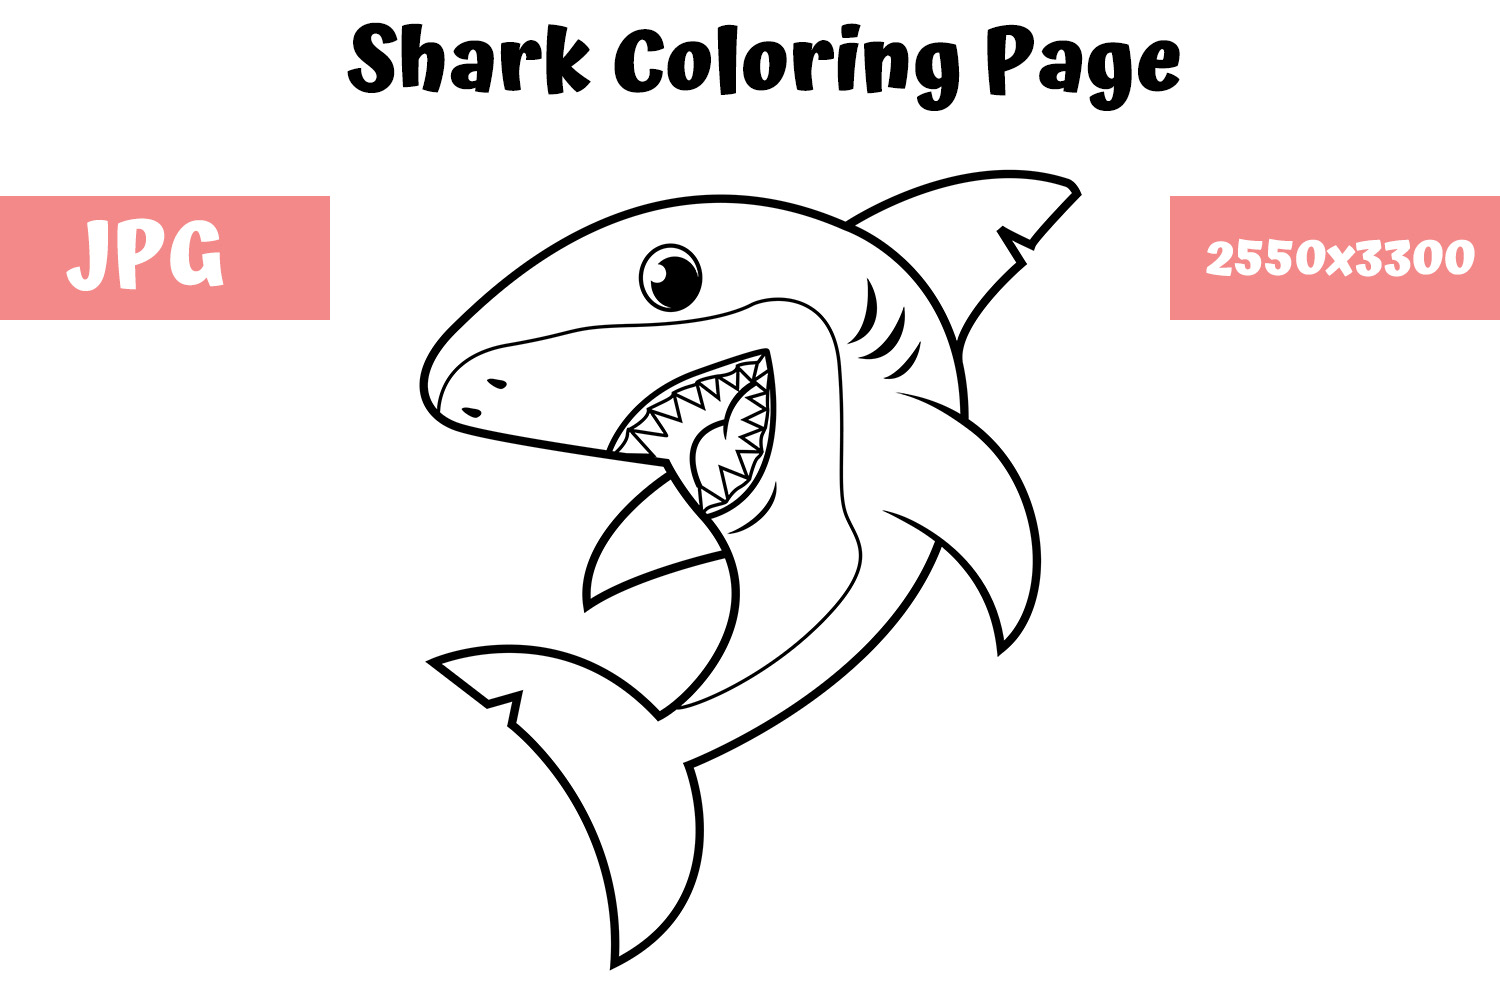 - Coloring Book Page For Kids - Shark (Graphic) By MyBeautifulFiles